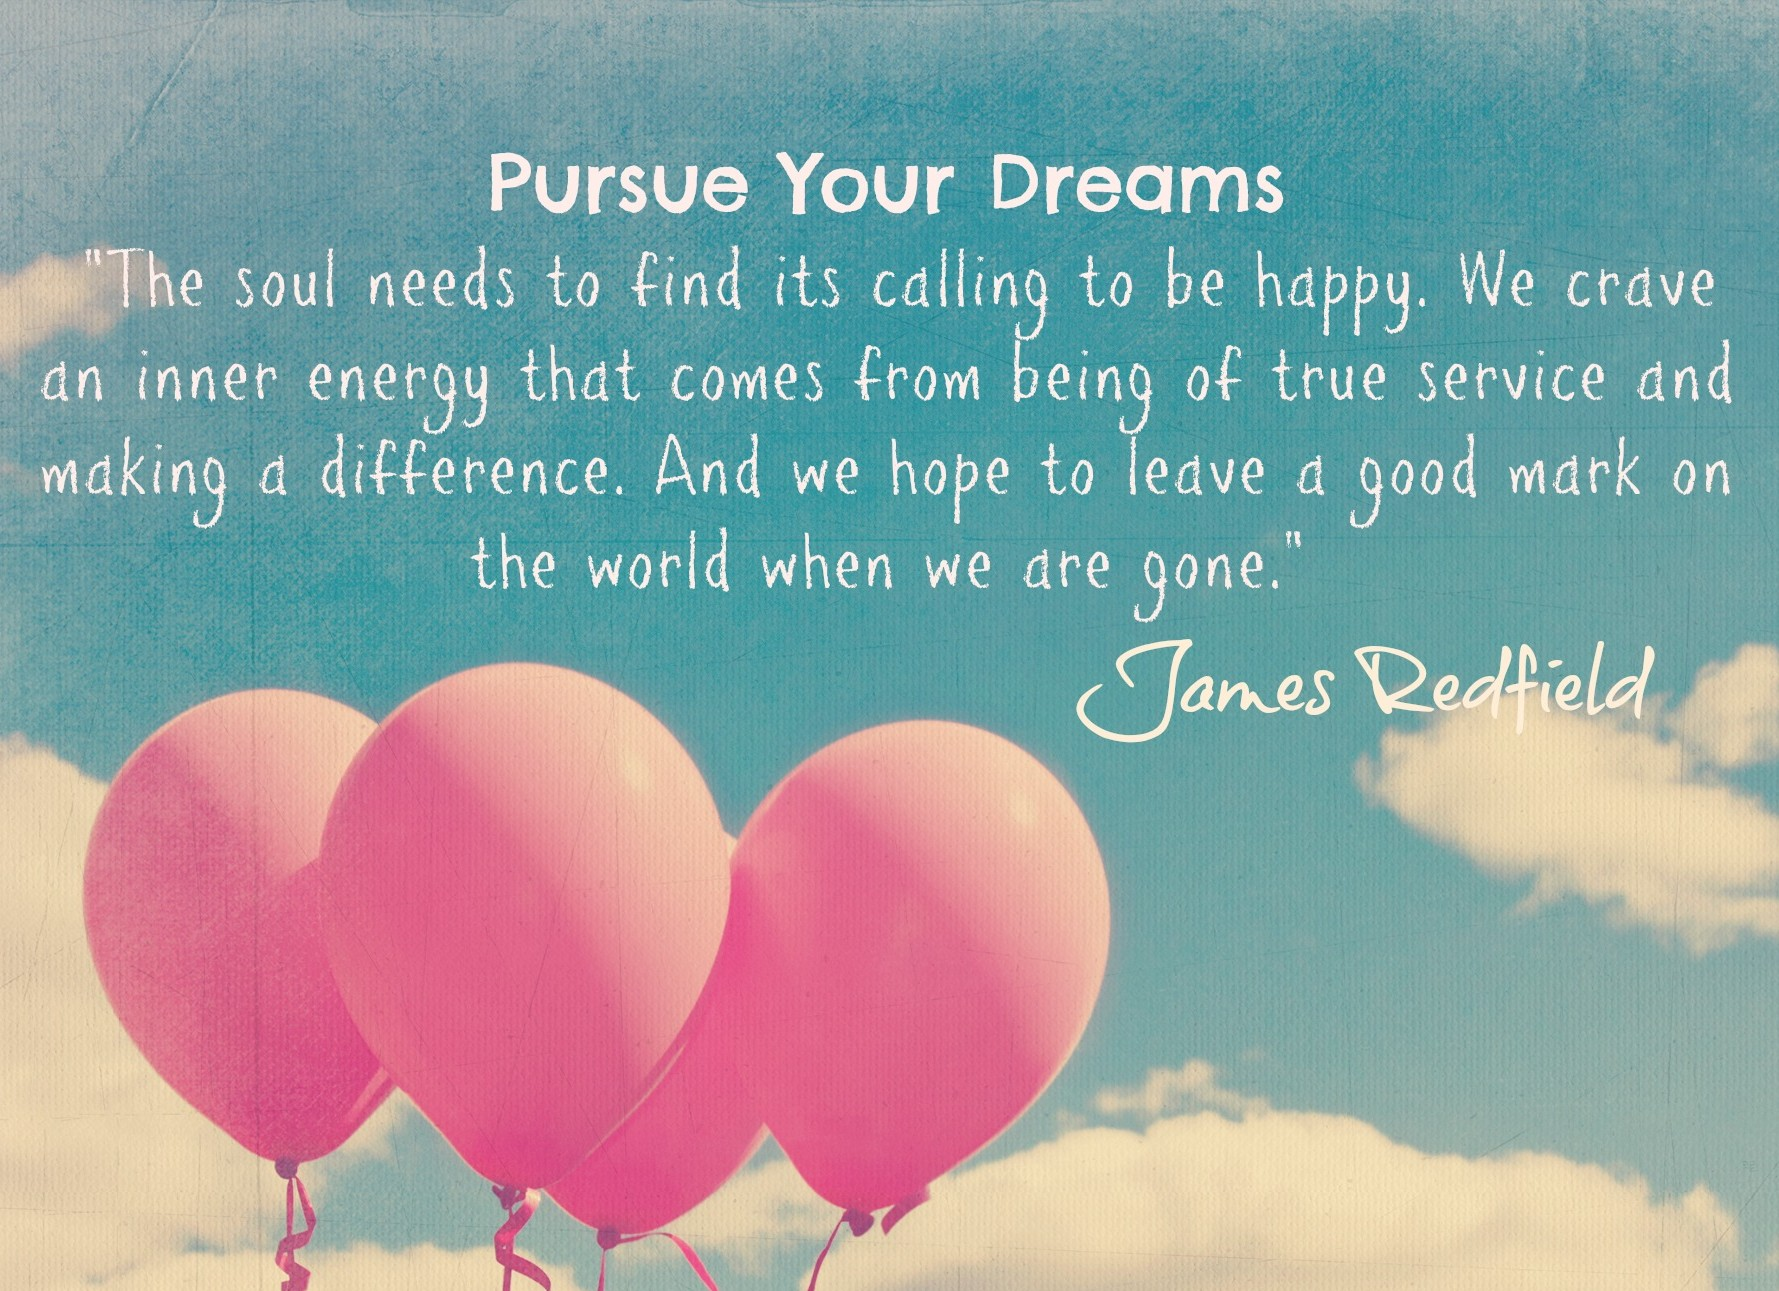 PURSUE YOUR DREAMS